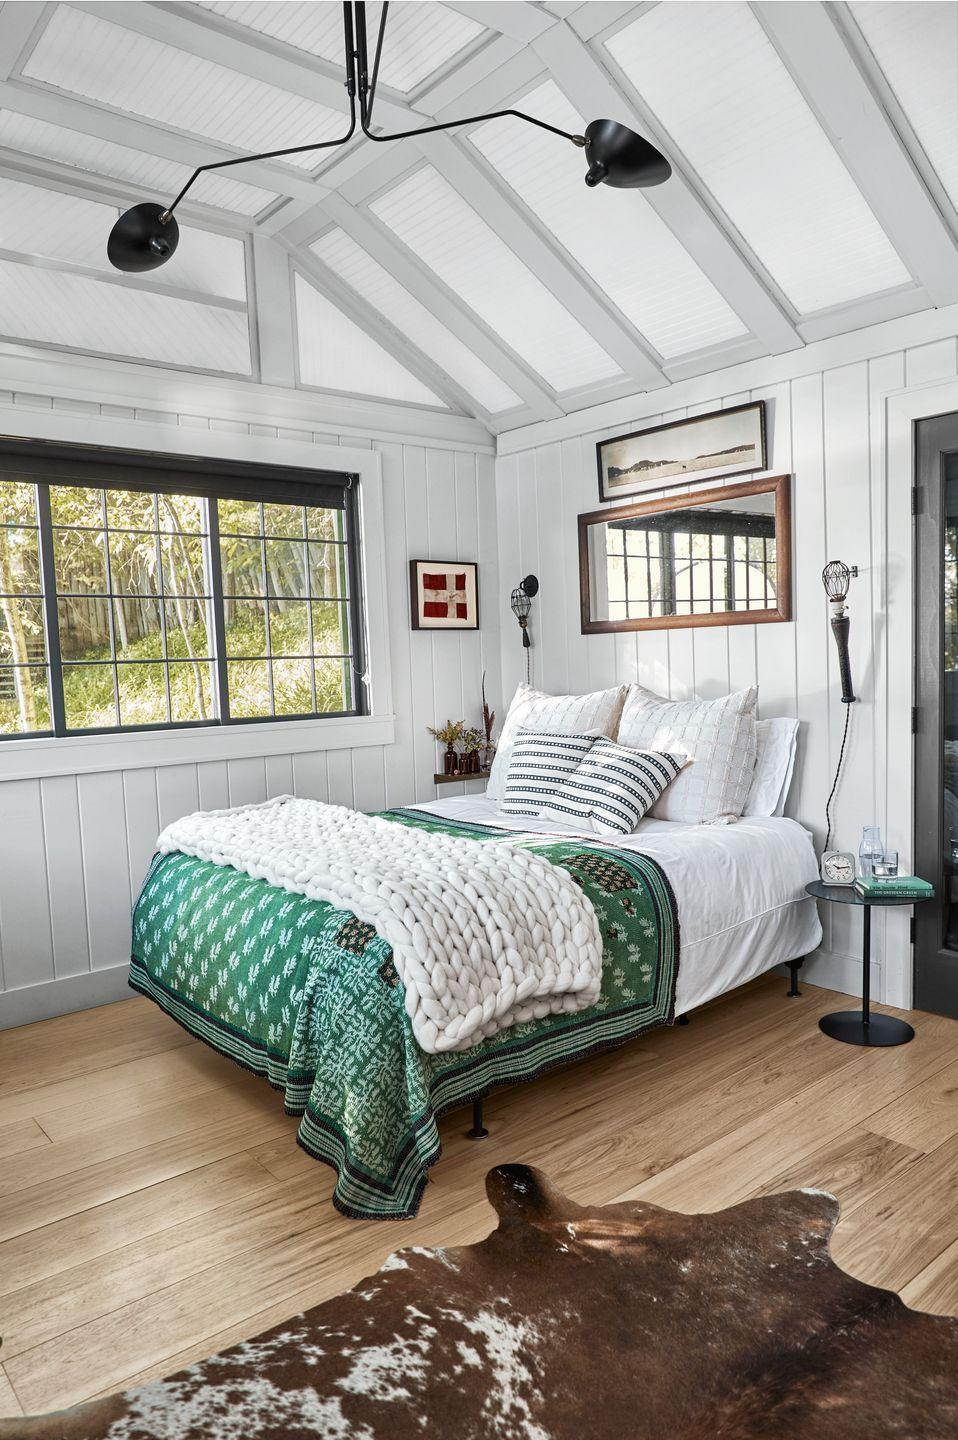 """<p>For a look that is airy and refined, understated greige makes the perfect color choice. Let the architecture of your room inform your design decisions. By painting the exposed ceiling beams the same color as the planked walls, homeowner Vincent Mazeau added some visual interest and kept the ceiling from feeling too lofty. </p><p><strong>Get the Look: </strong><br>Wall Paint Color: <a href=""""https://www.clare.com/paint/wall/penthouse"""" rel=""""nofollow noopener"""" target=""""_blank"""" data-ylk=""""slk:Penthouse by Clare"""" class=""""link rapid-noclick-resp"""">Penthouse by Clare</a></p>"""